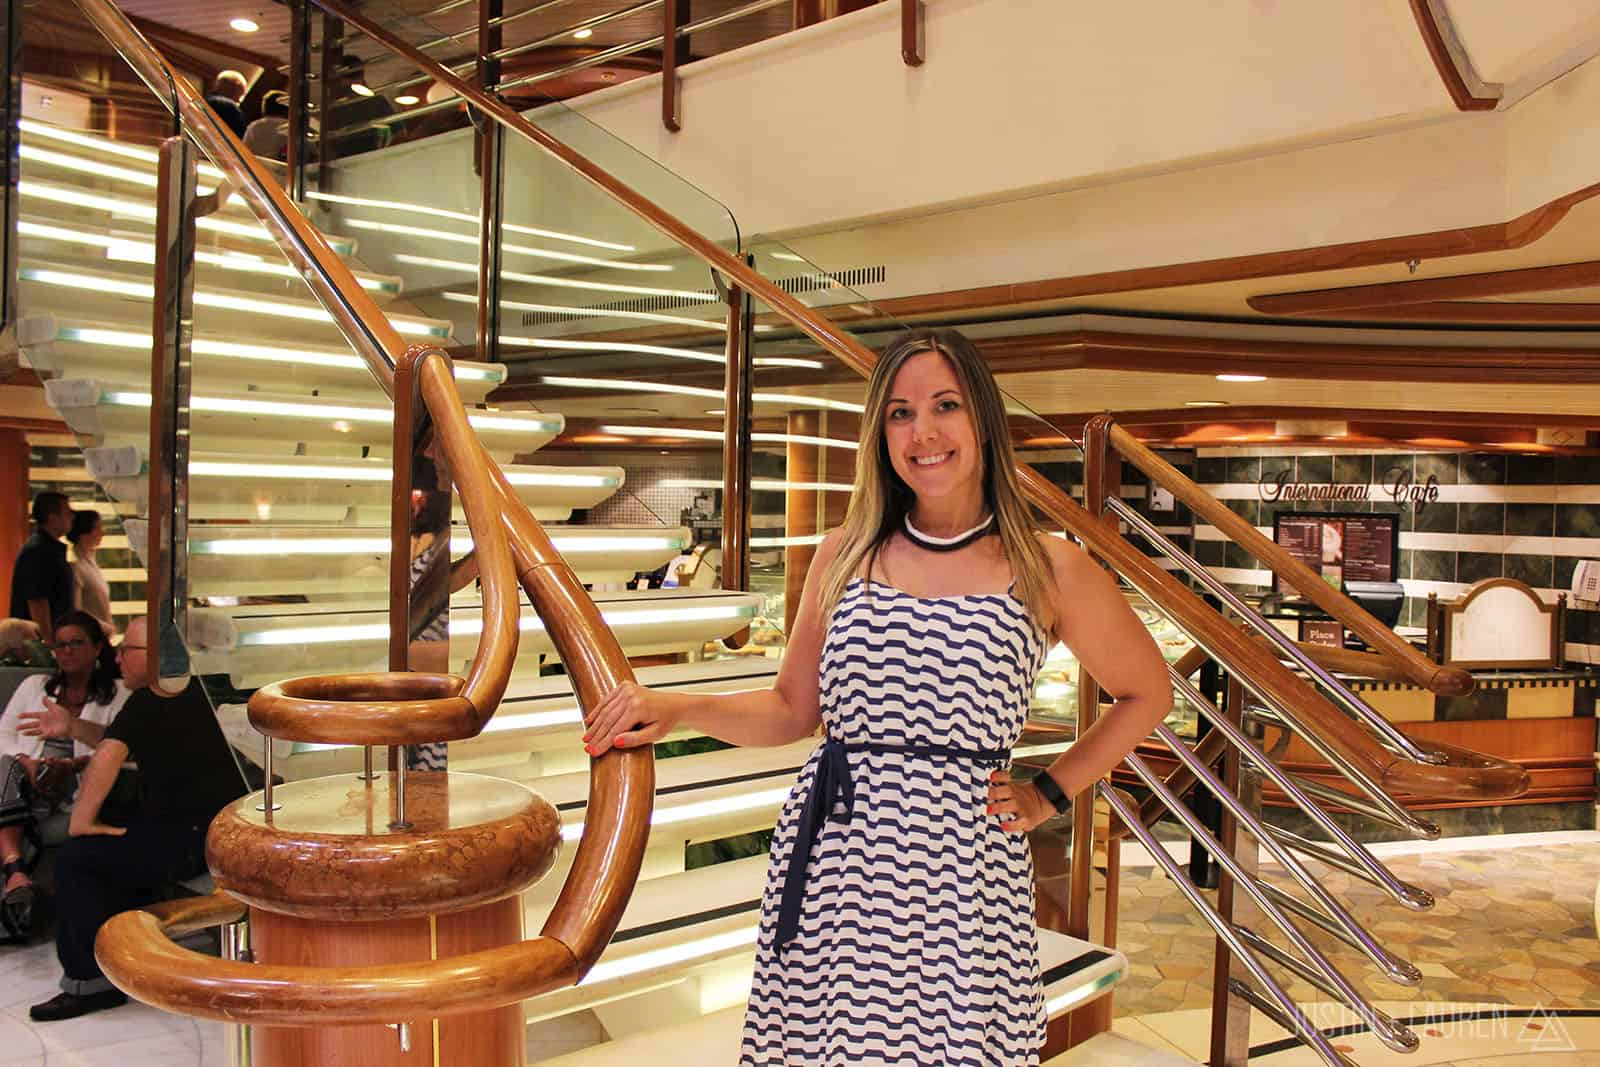 Our Last Day at Sea Aboard the Caribbean Princess Cruise Ship